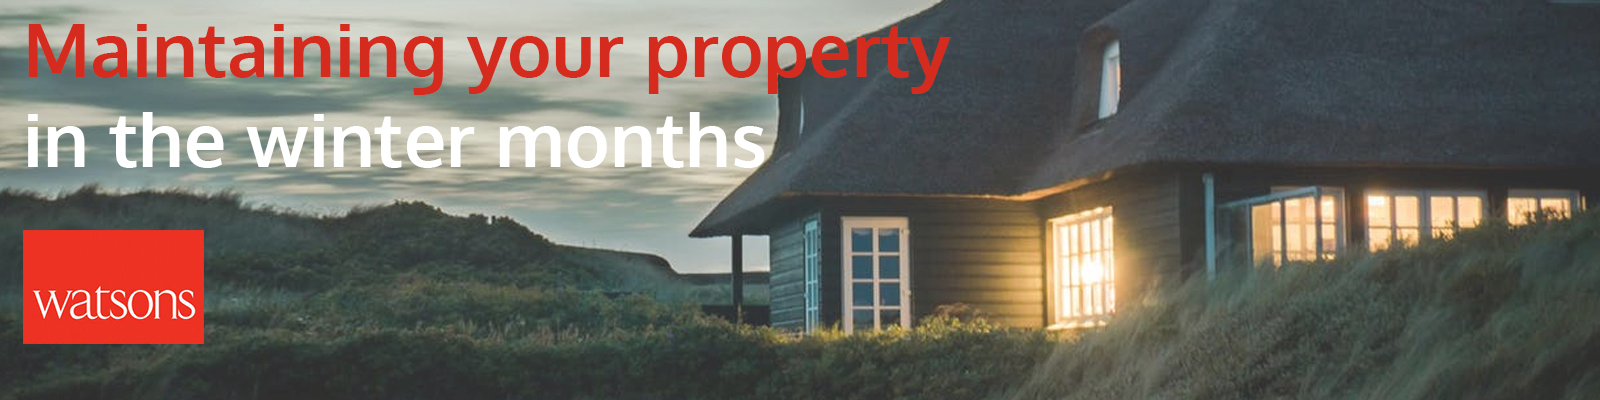 Maintaining Your Property